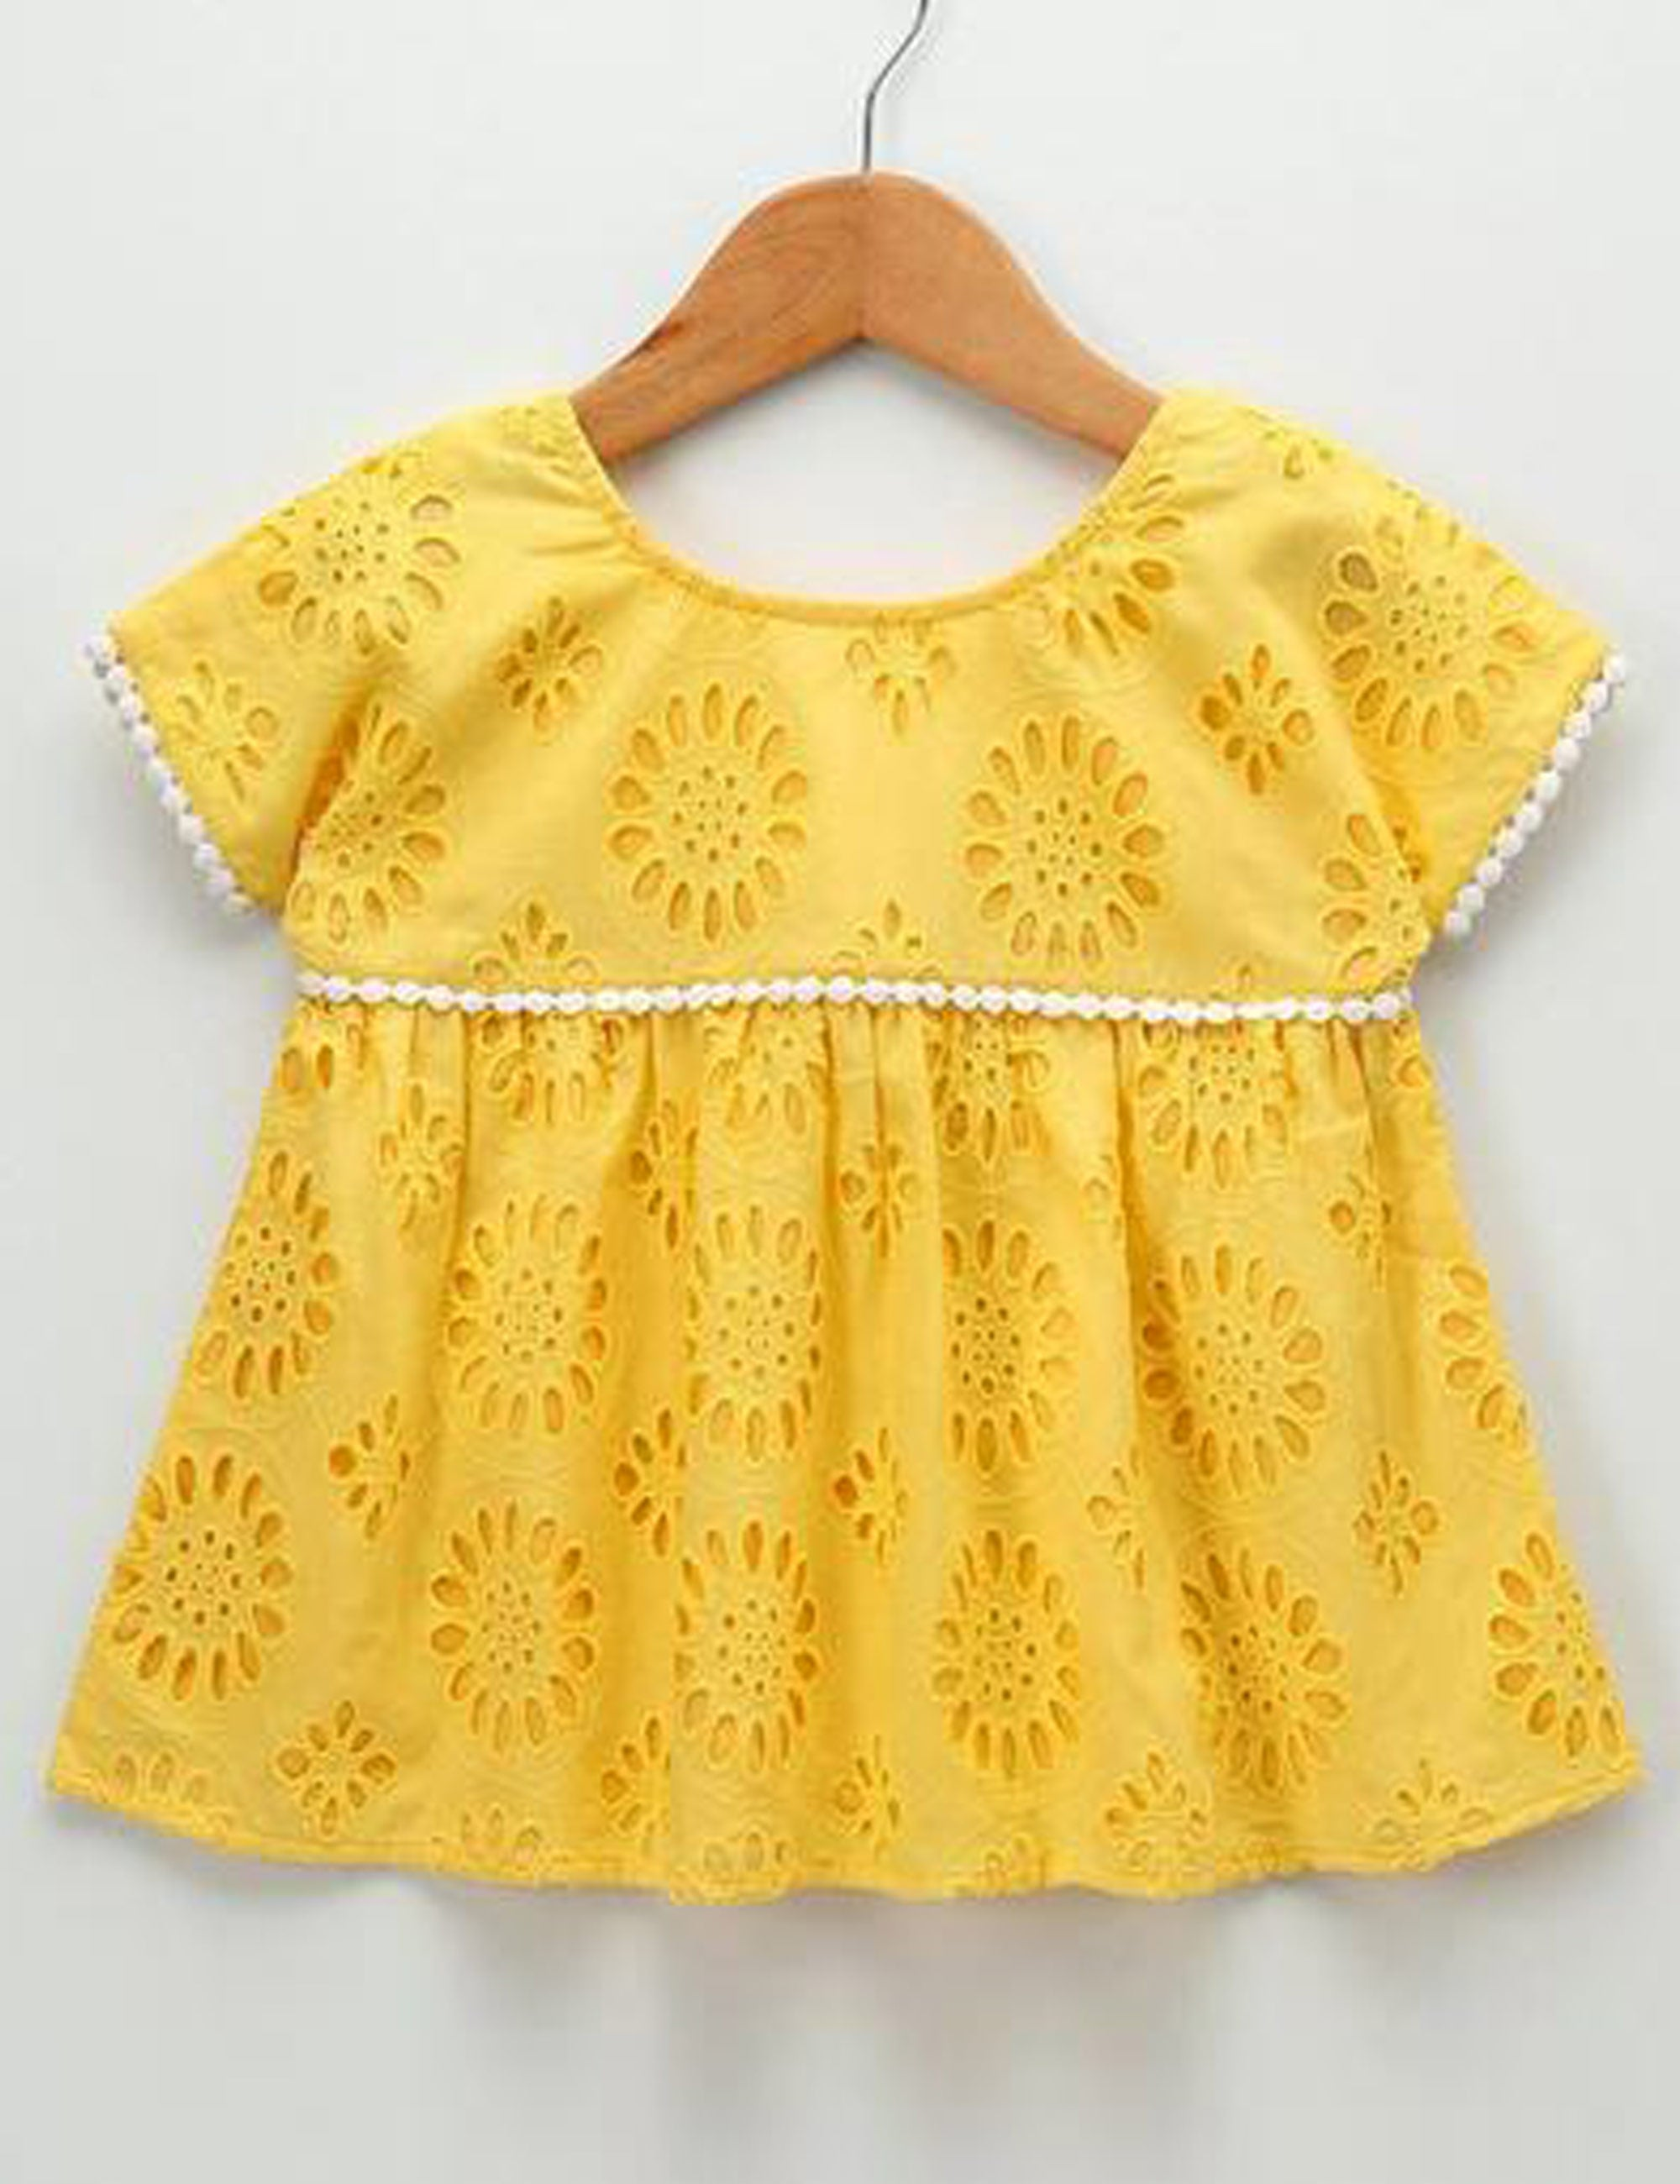 Schiffli Top with Pom Pom Lace in Yellow Colour for Girls